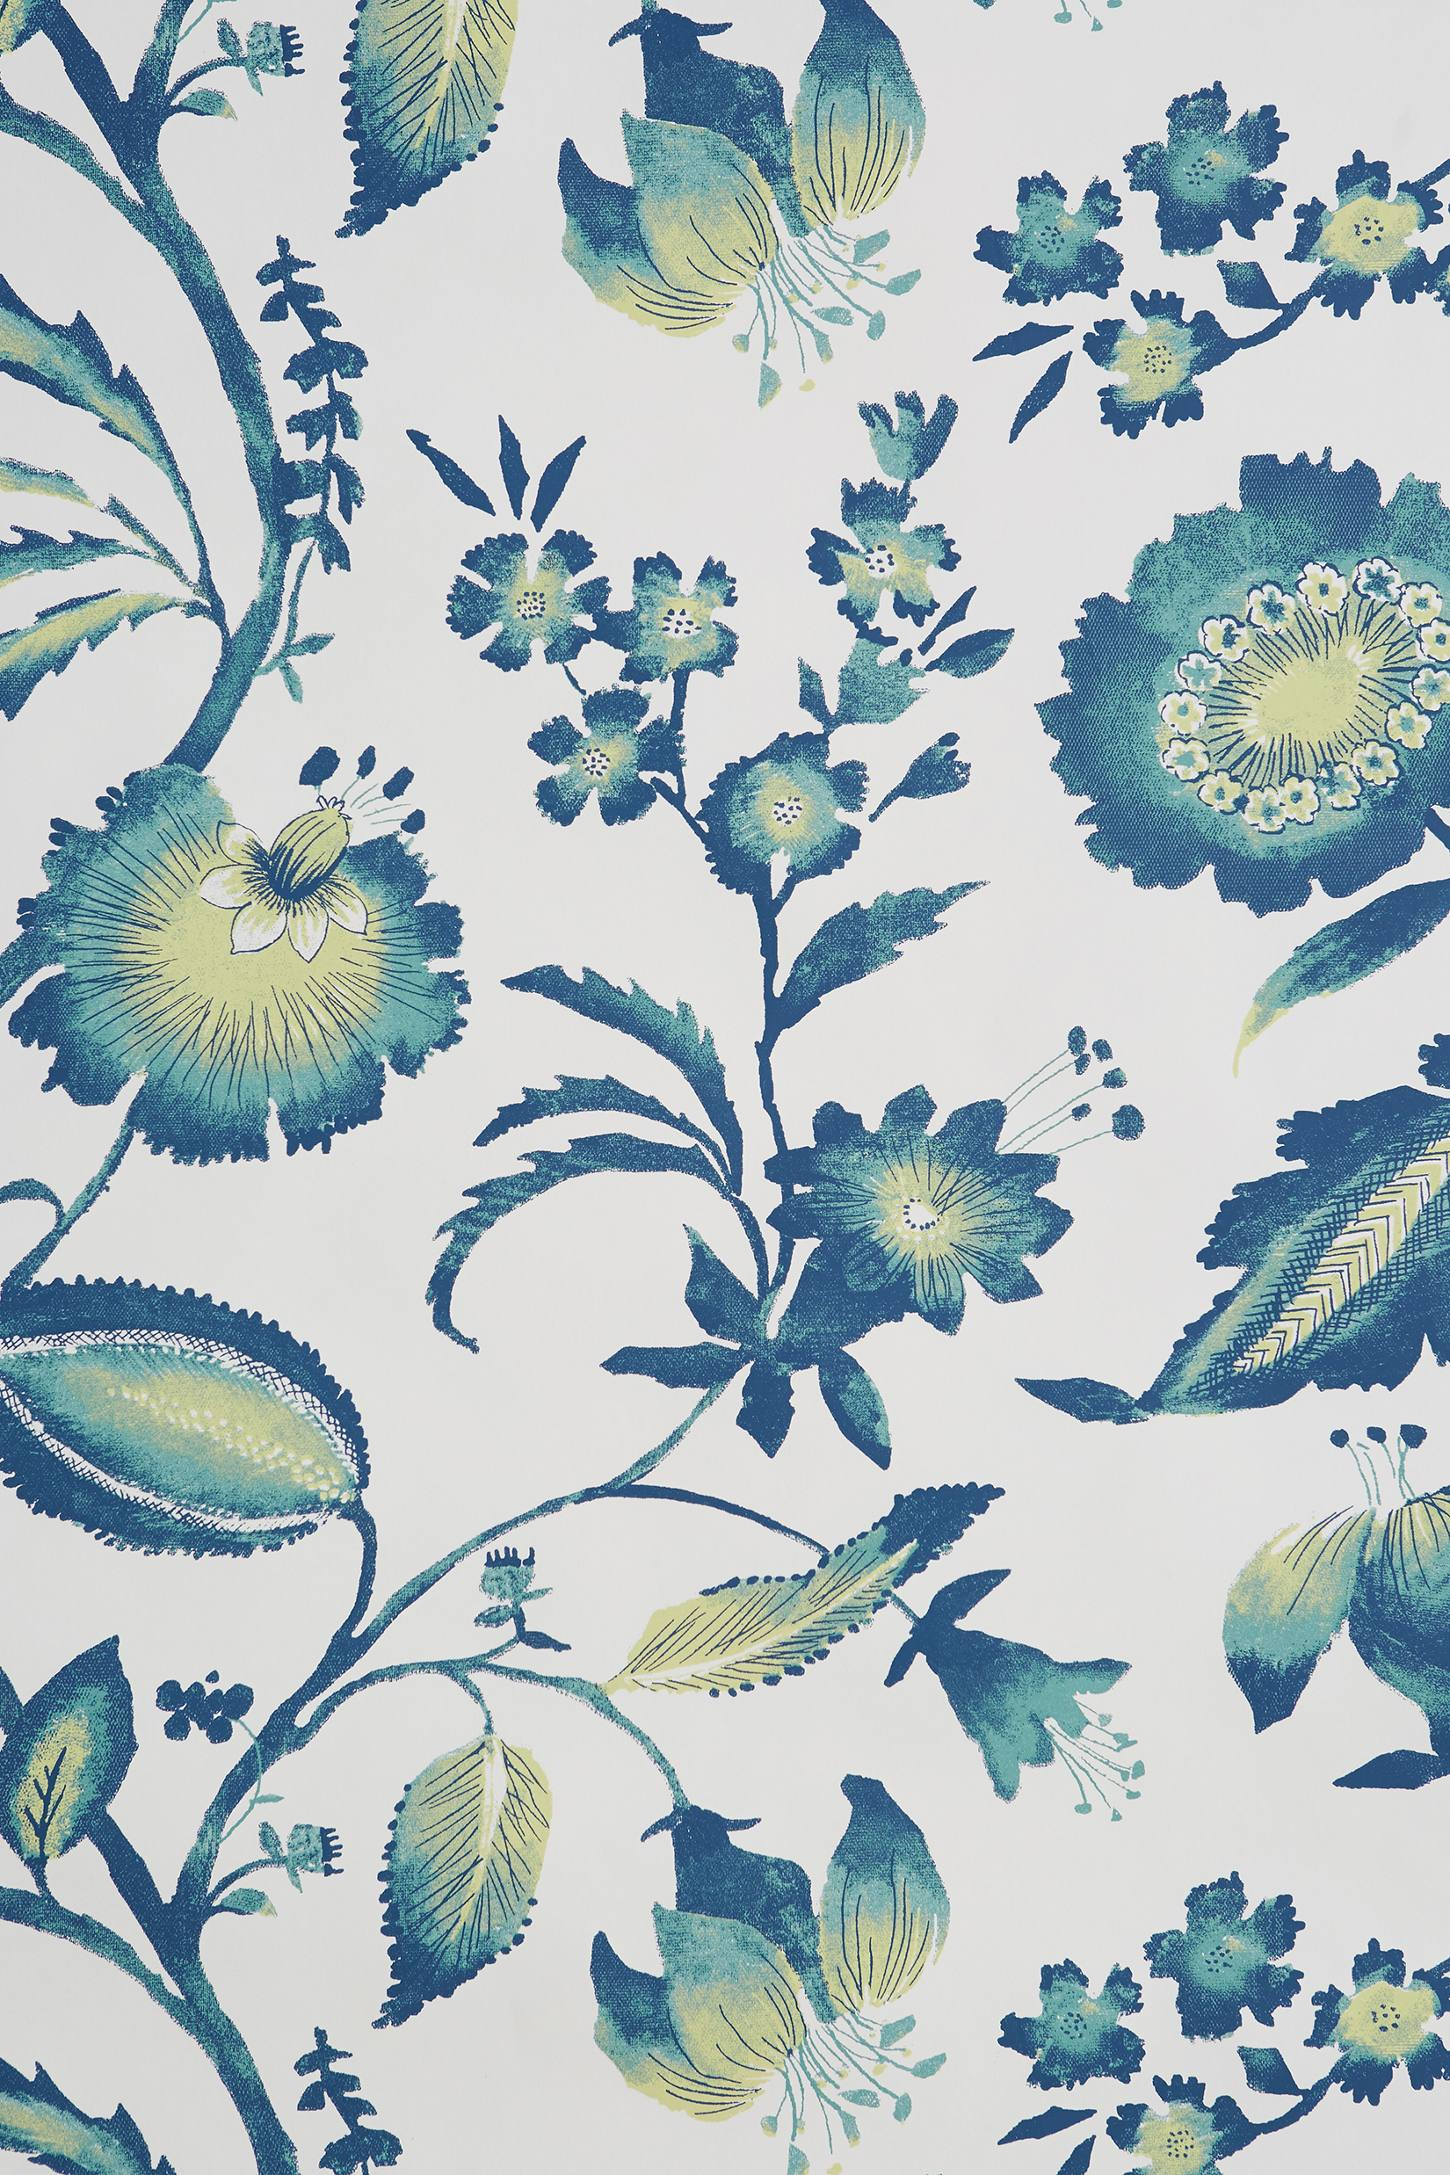 Jacobean Floral Wallpaper Anthropologie HD Wallpapers Download Free Images Wallpaper [1000image.com]